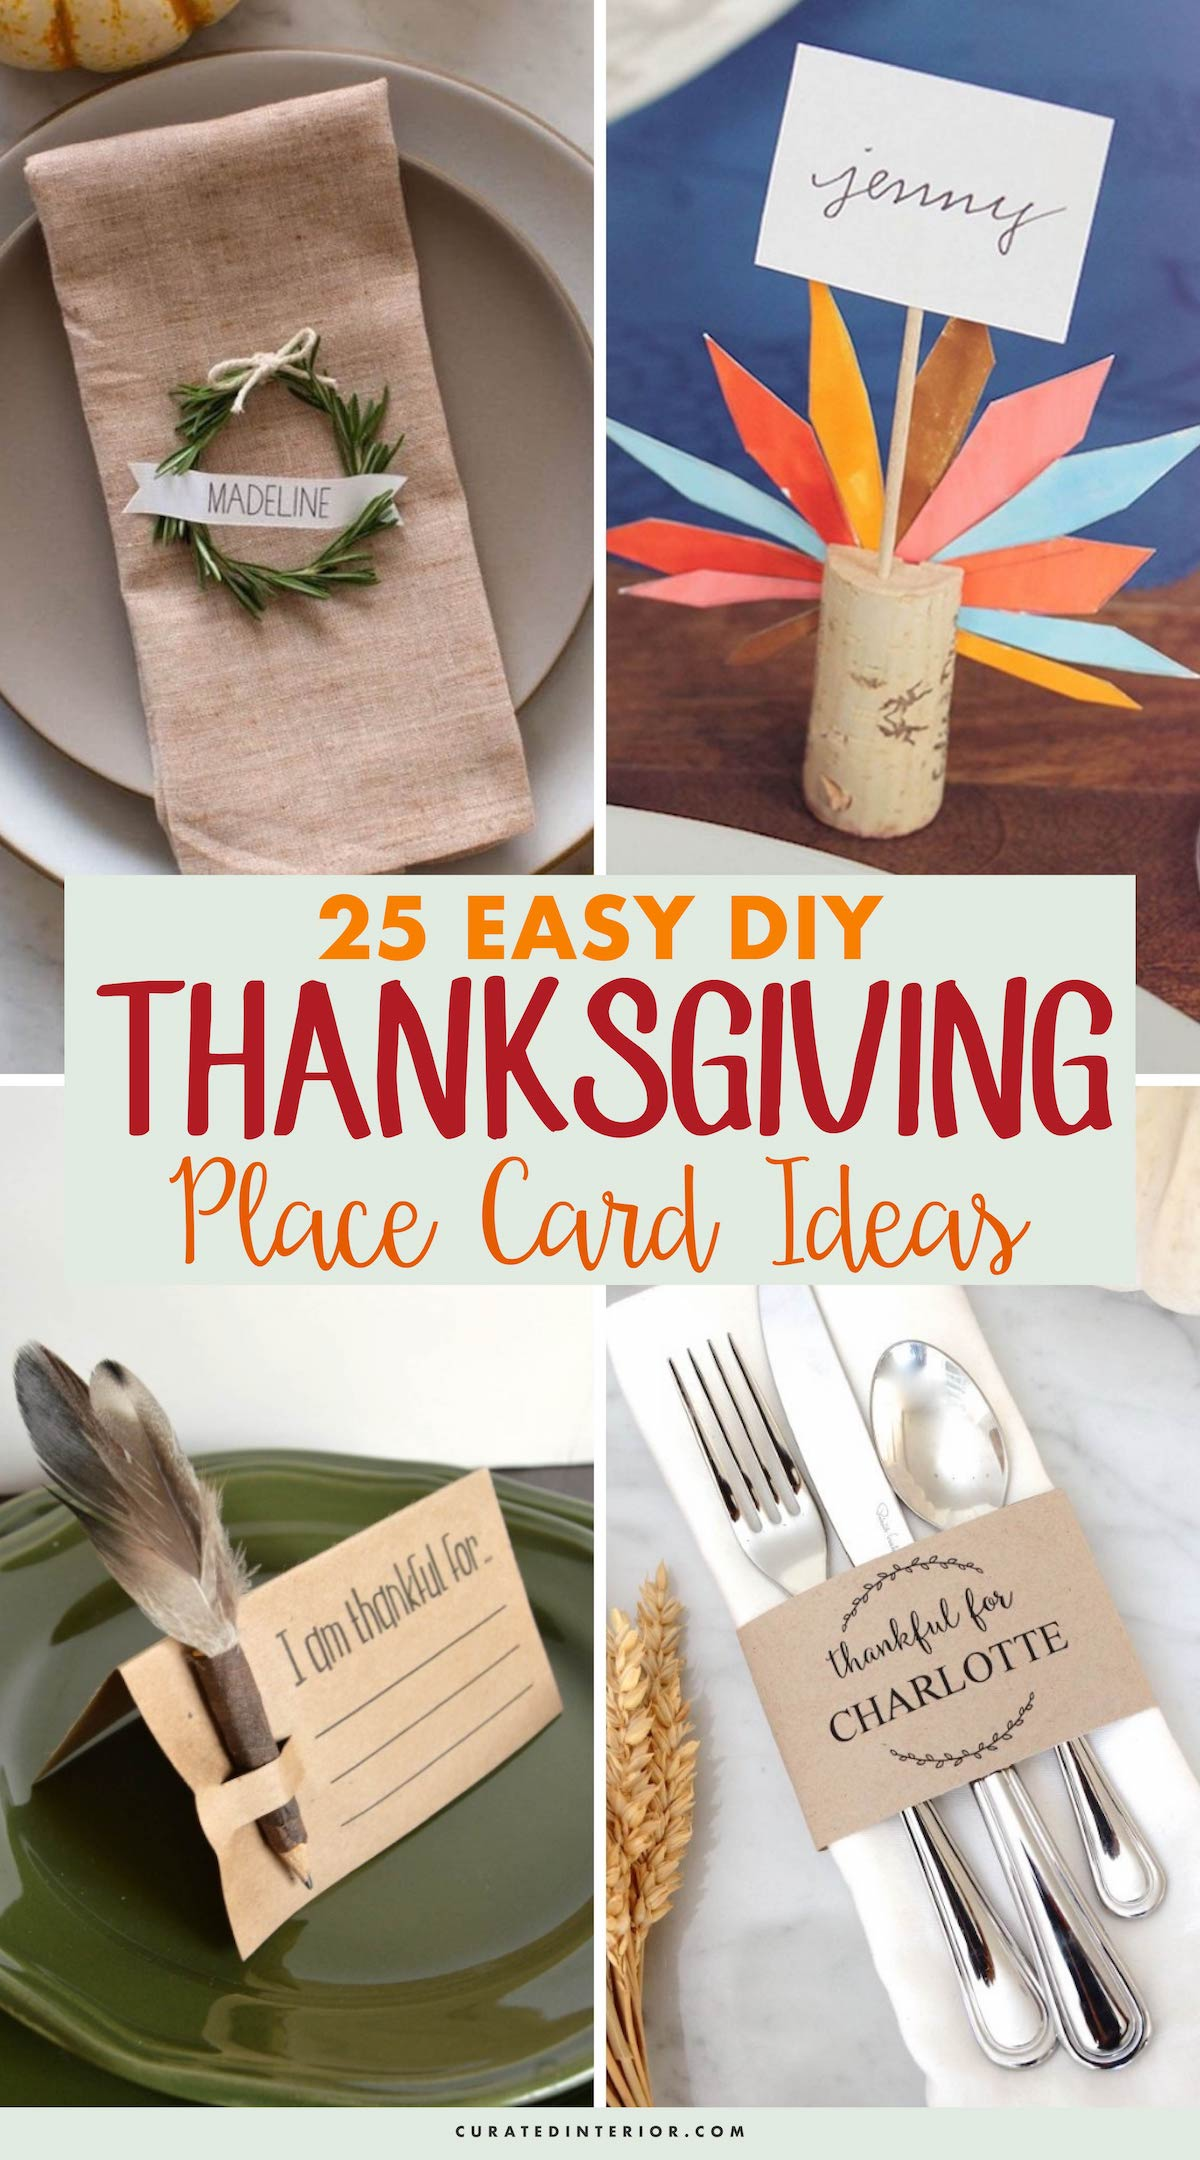 25 Easy Diy Thanksgiving Place Card Ideas Thanksgivingdecor Thanksgivingtable Thanksgivingtabledecor